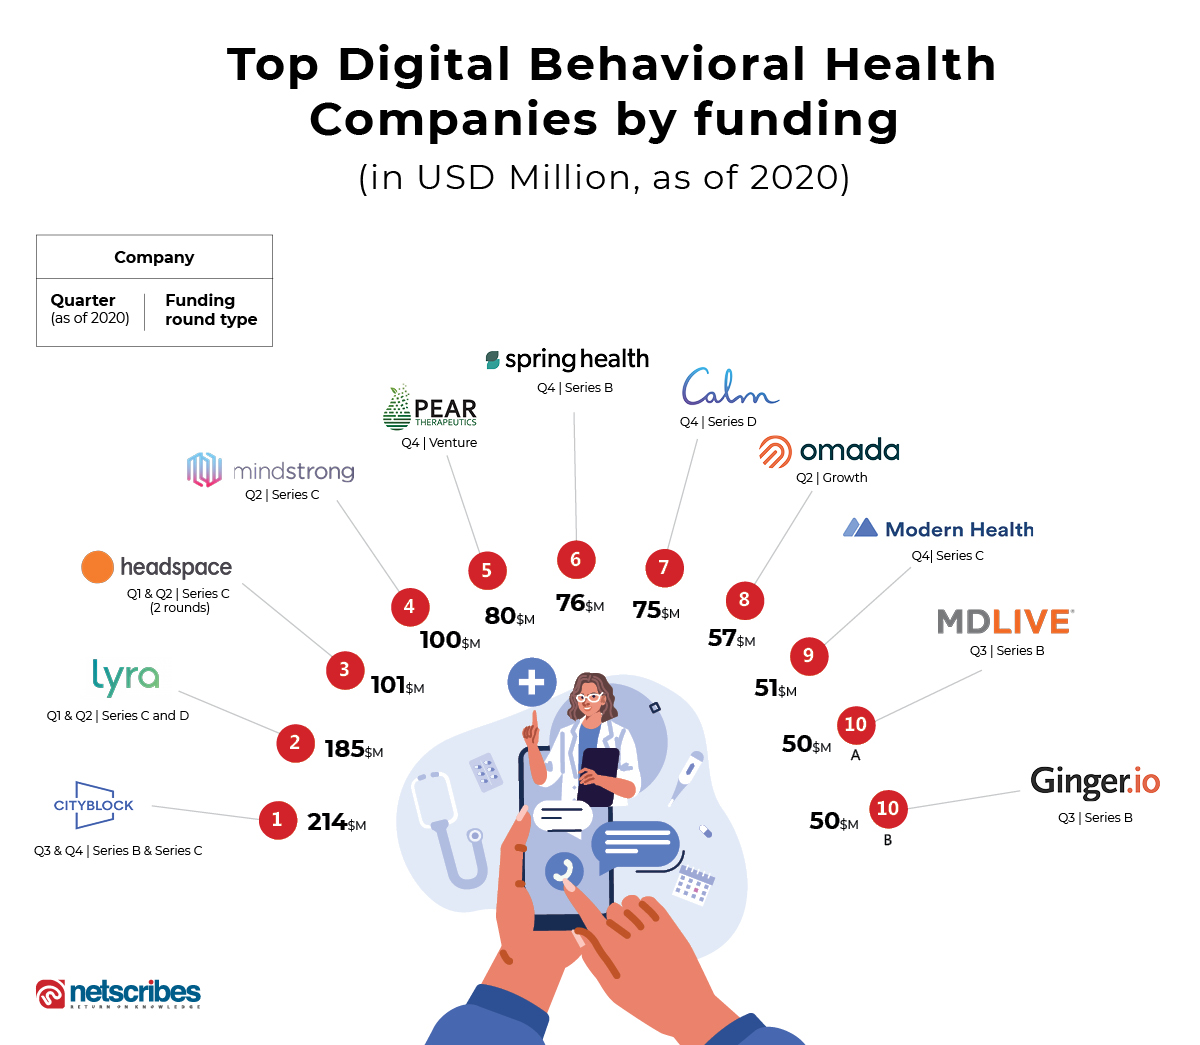 Top funded digital behavioral health companies